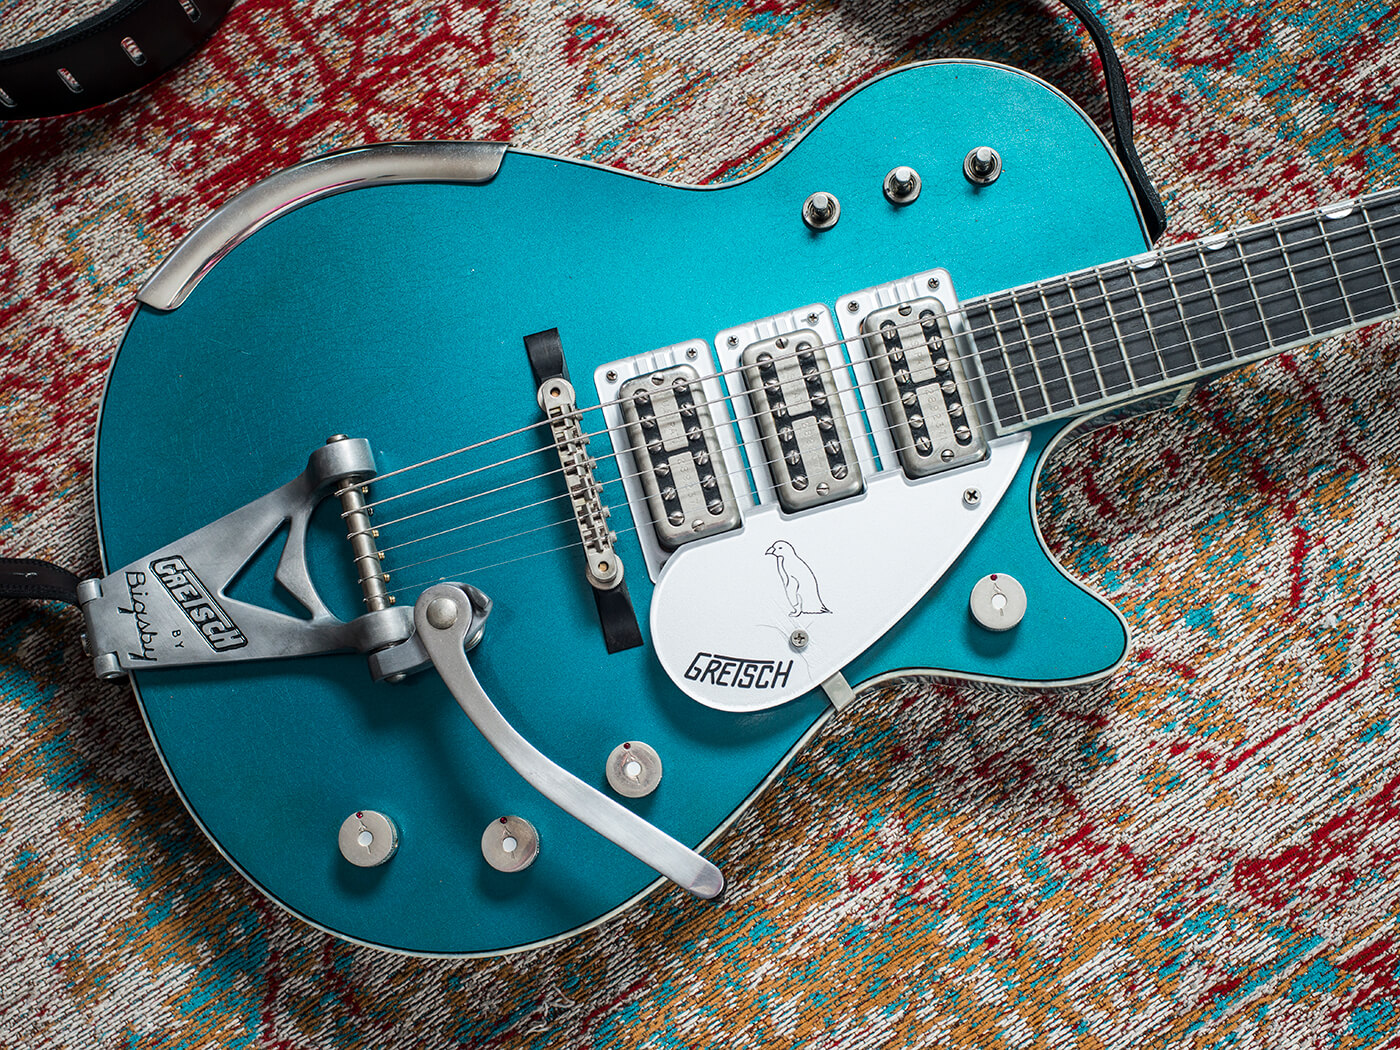 Scott Holiday's Gretsch Penguin